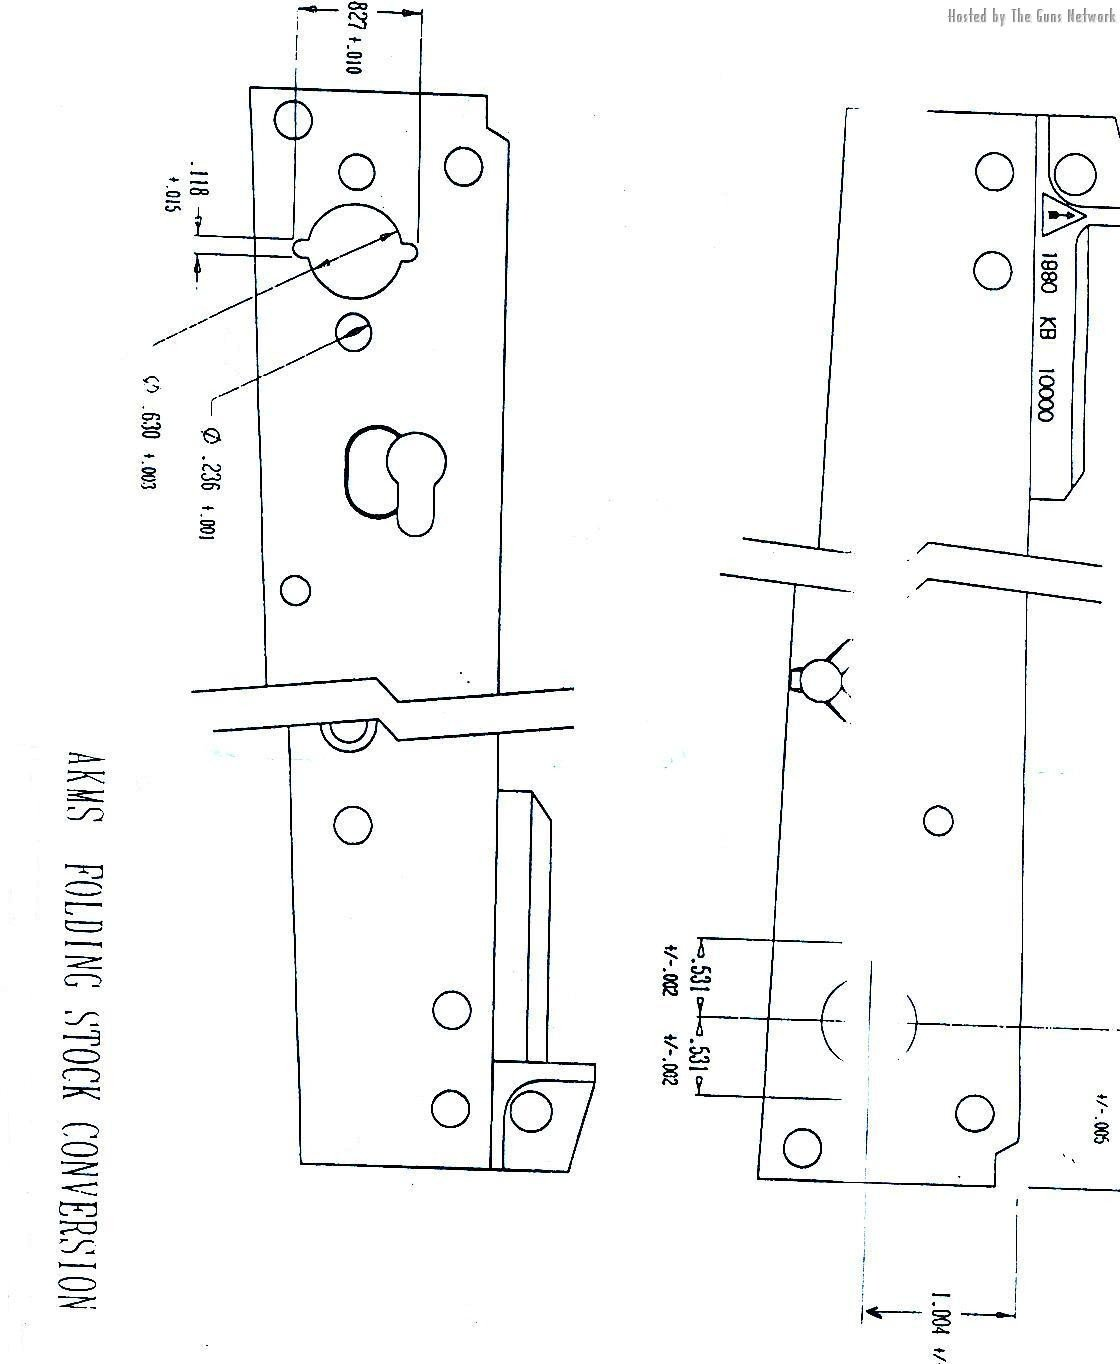 Printable Ak 47 Receiver Template Index Of Cdn 29 1994 341